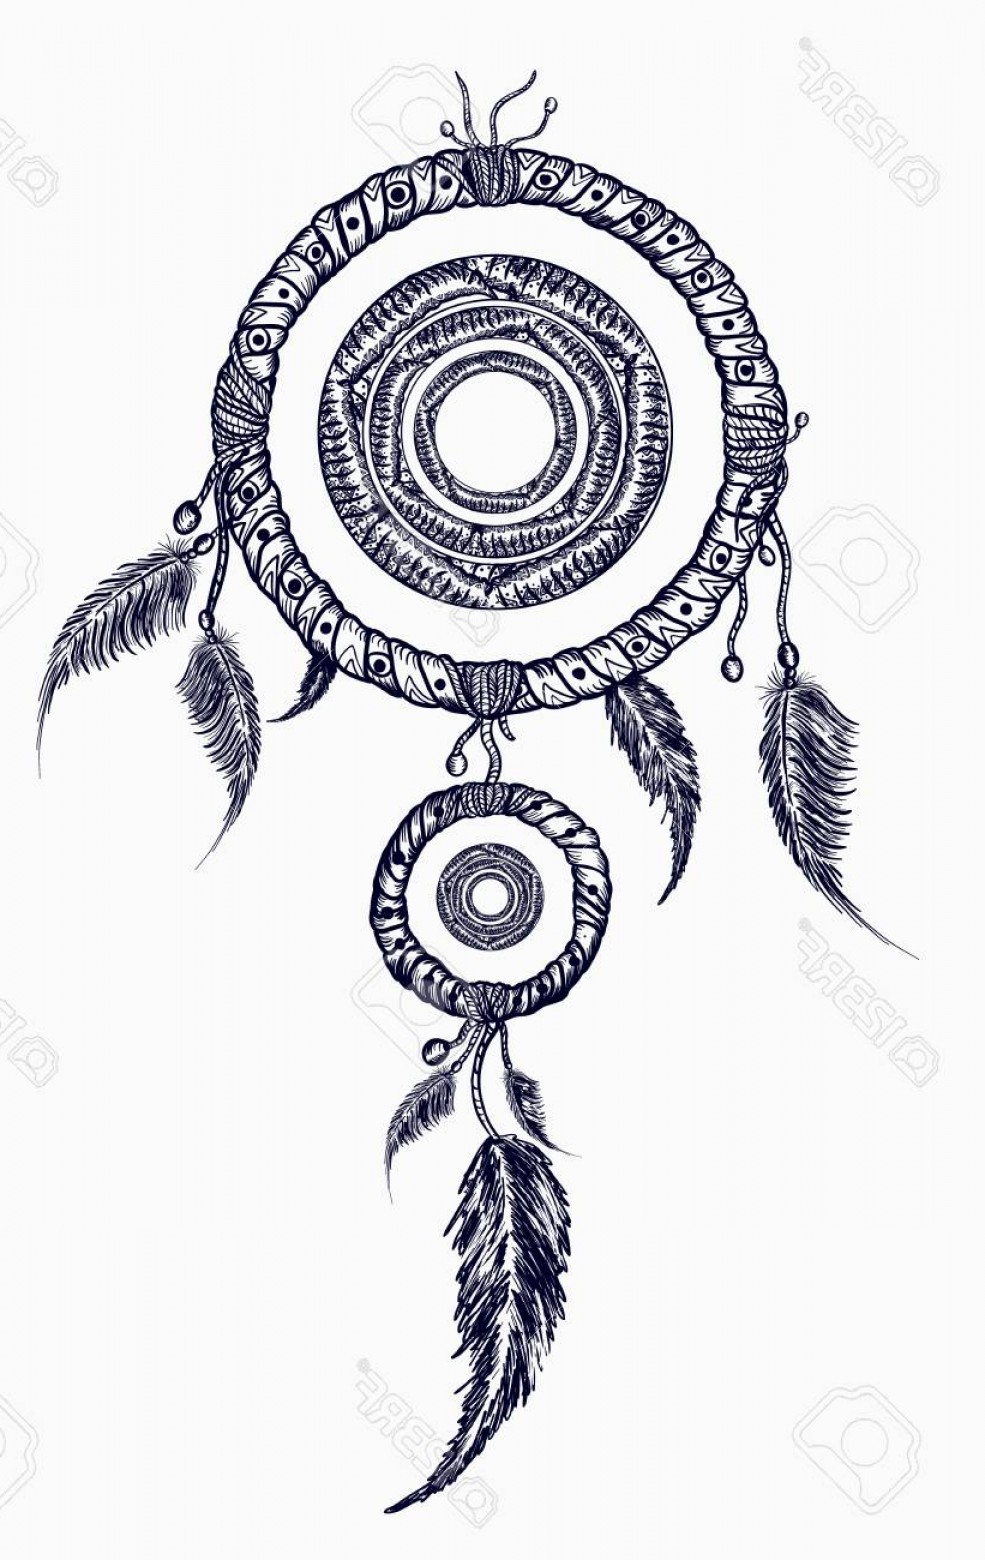 Dreamcatcher Tattoo Vector: Photostock Vector Dream Catcher With Feathers Tattoo Boho Native American Style T Shirt Design Indian Dream Catcher Wi